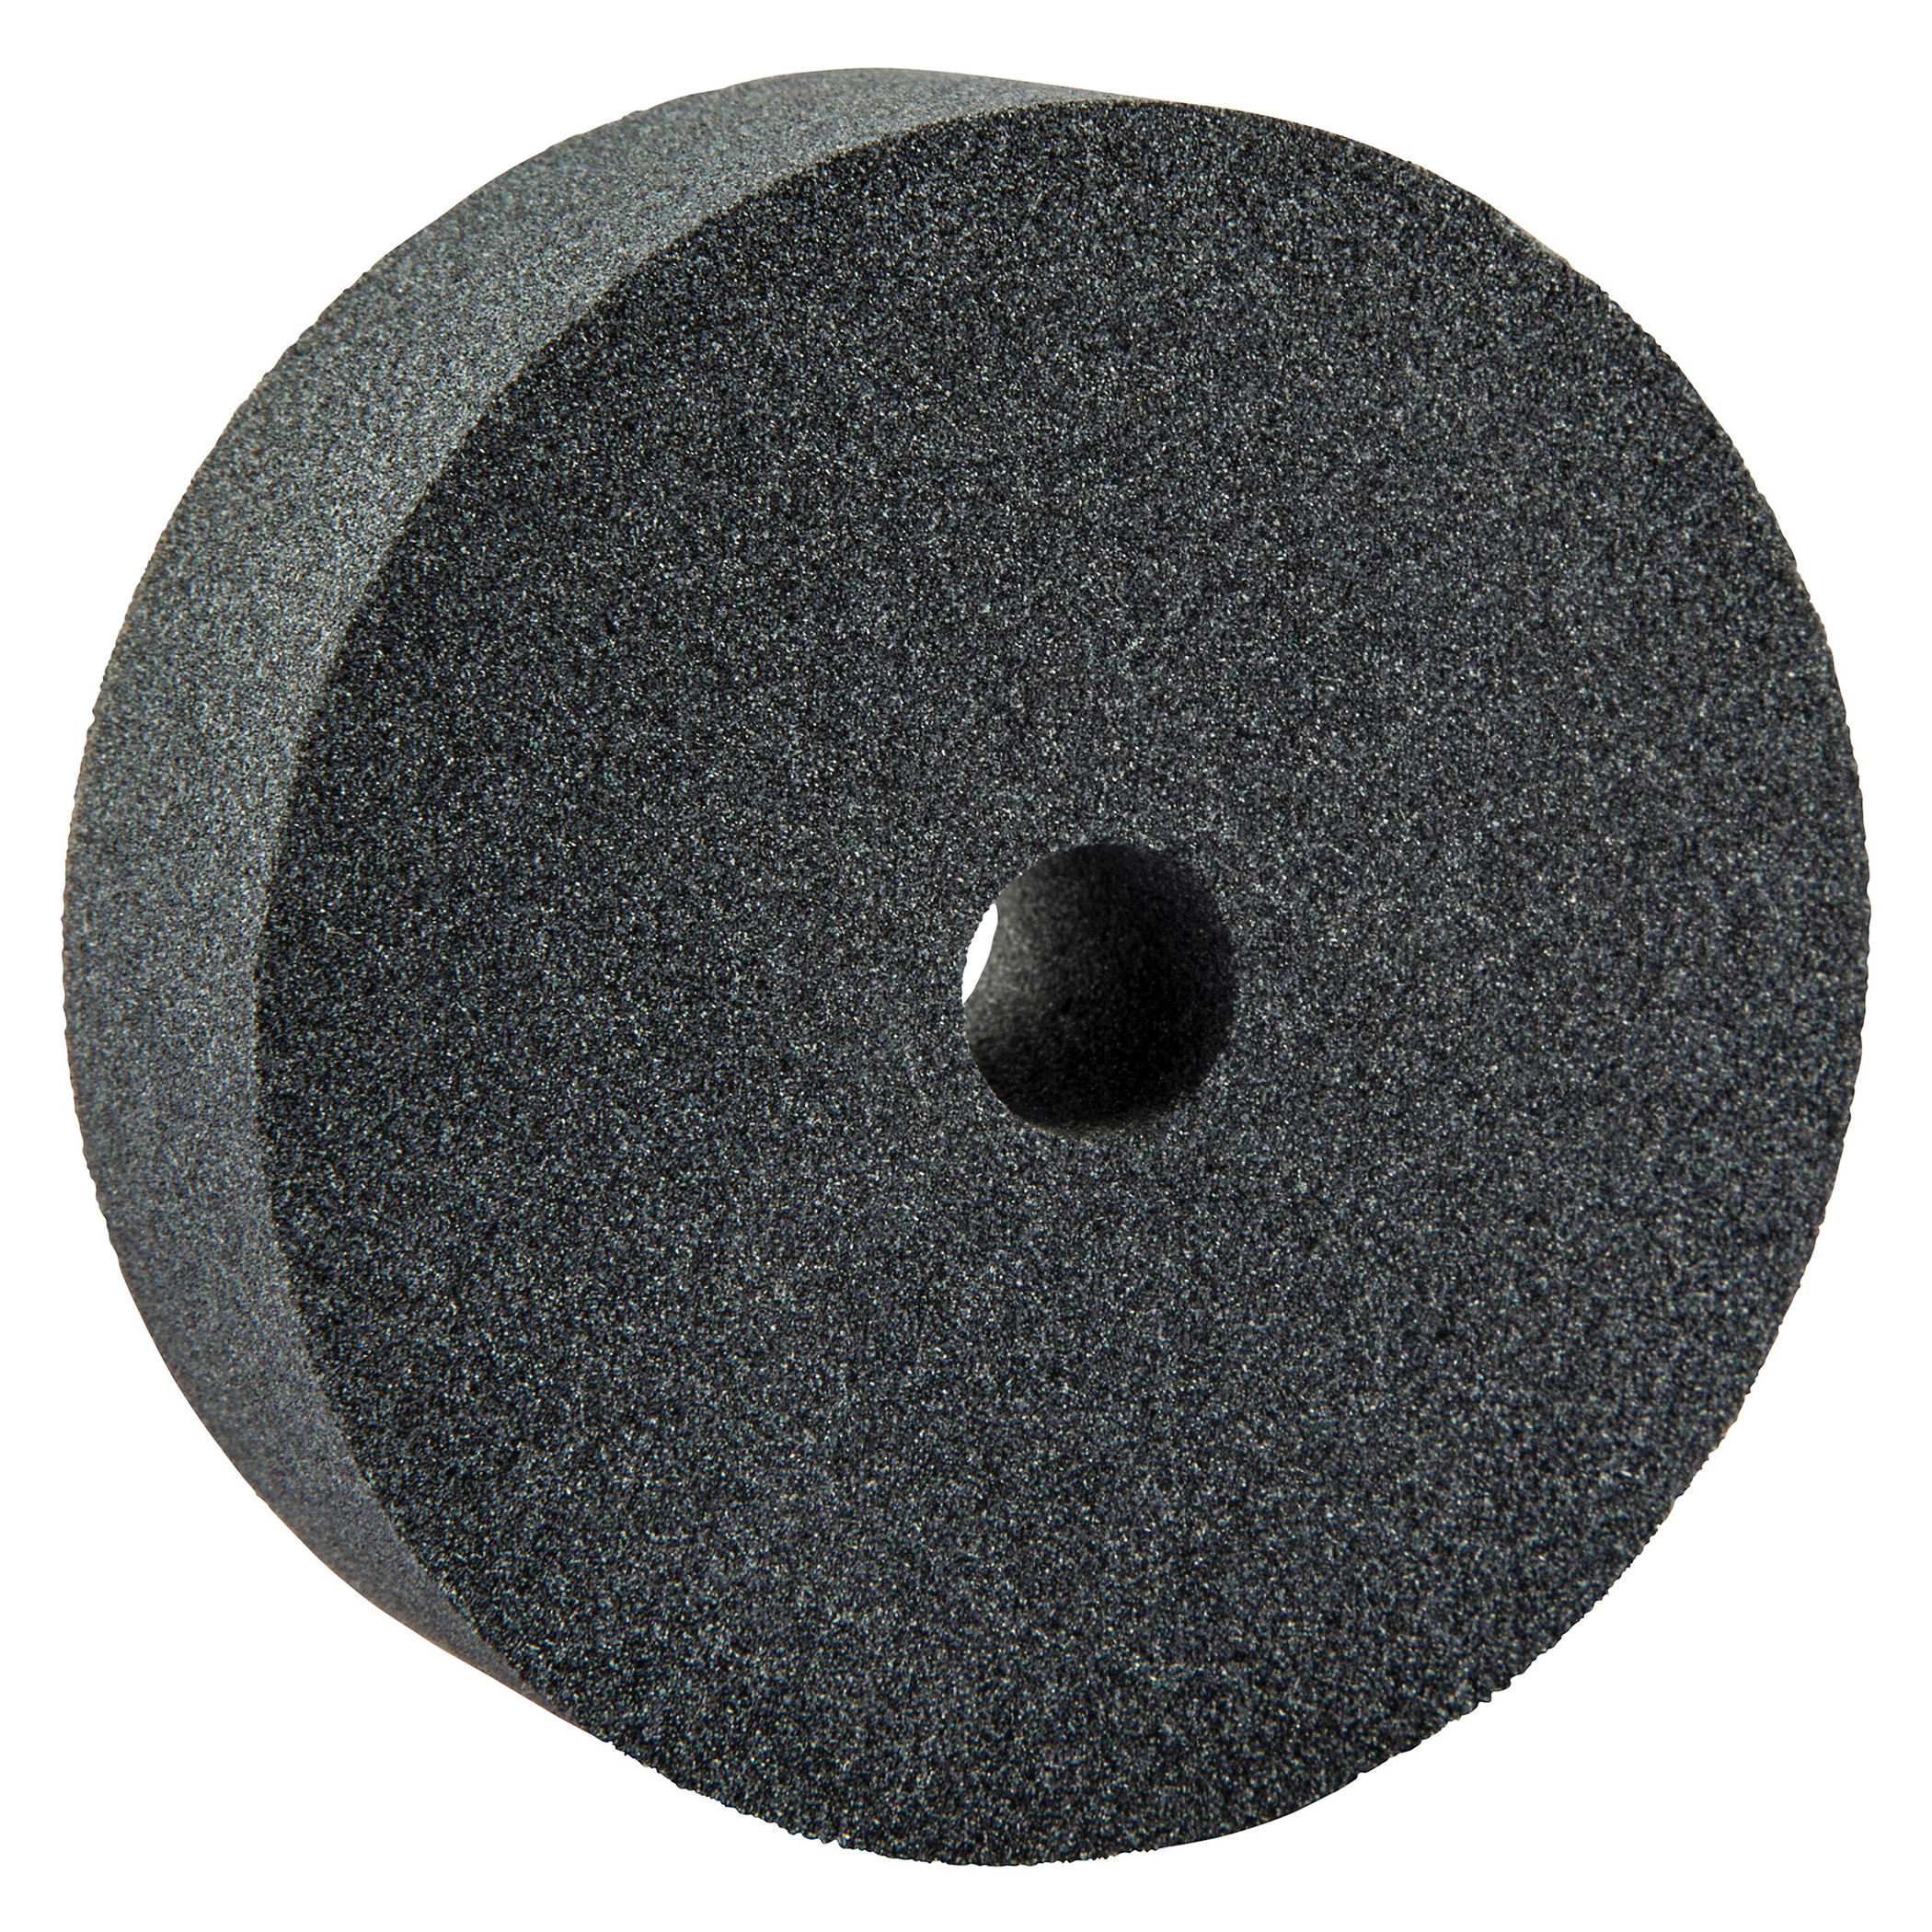 Norton® 66243529172 37C Straight Dressing Wheel, 3 in Dia x 1 in THK, 1/2 in Center Hole, 100 Grit, Silicon Carbide Abrasive